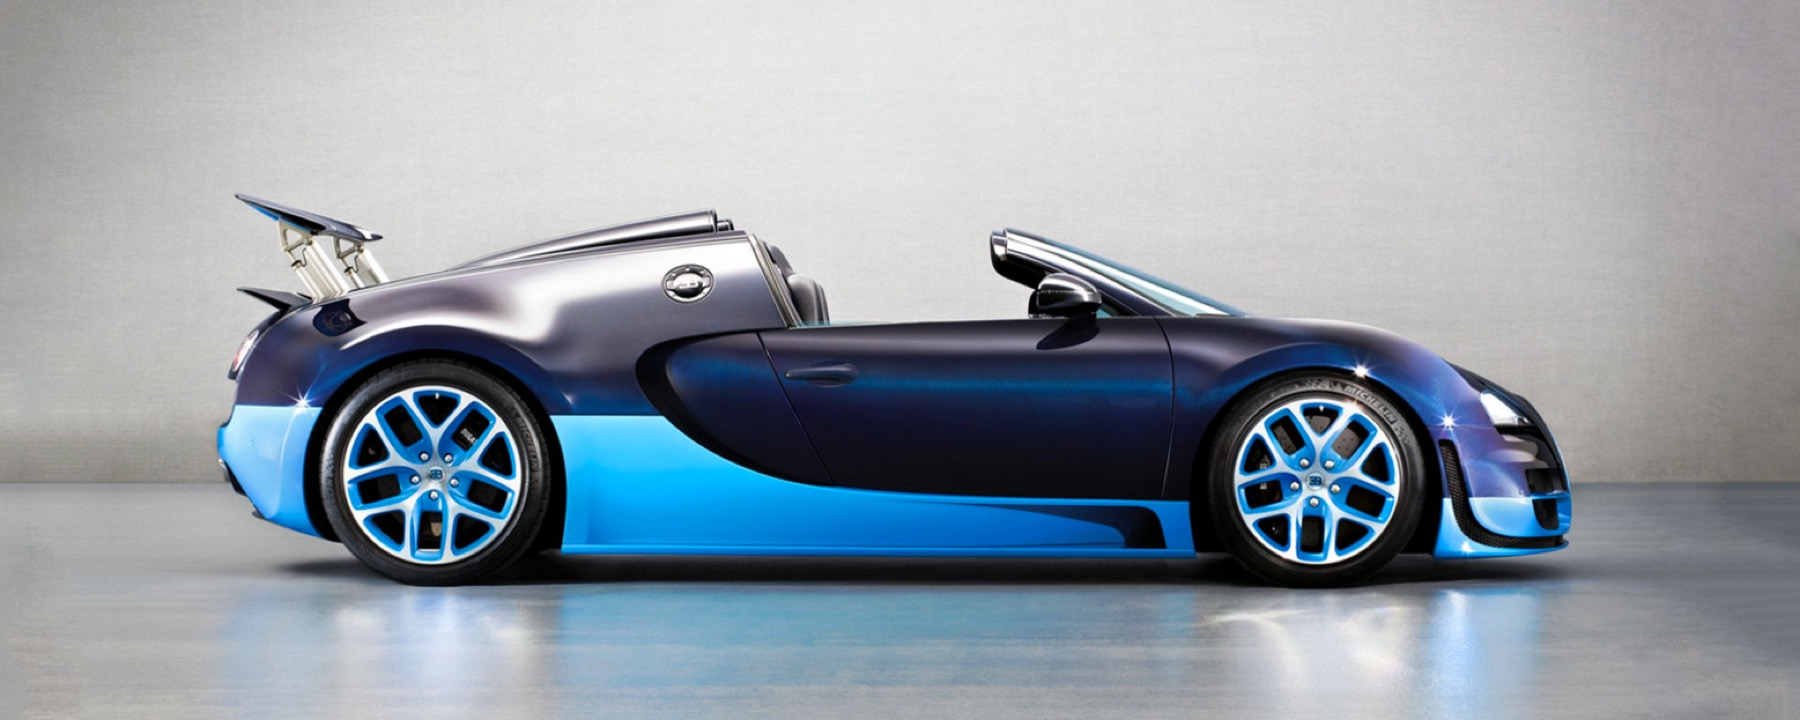 Bugatti Veryon Fastest Roadster In The World Indigo